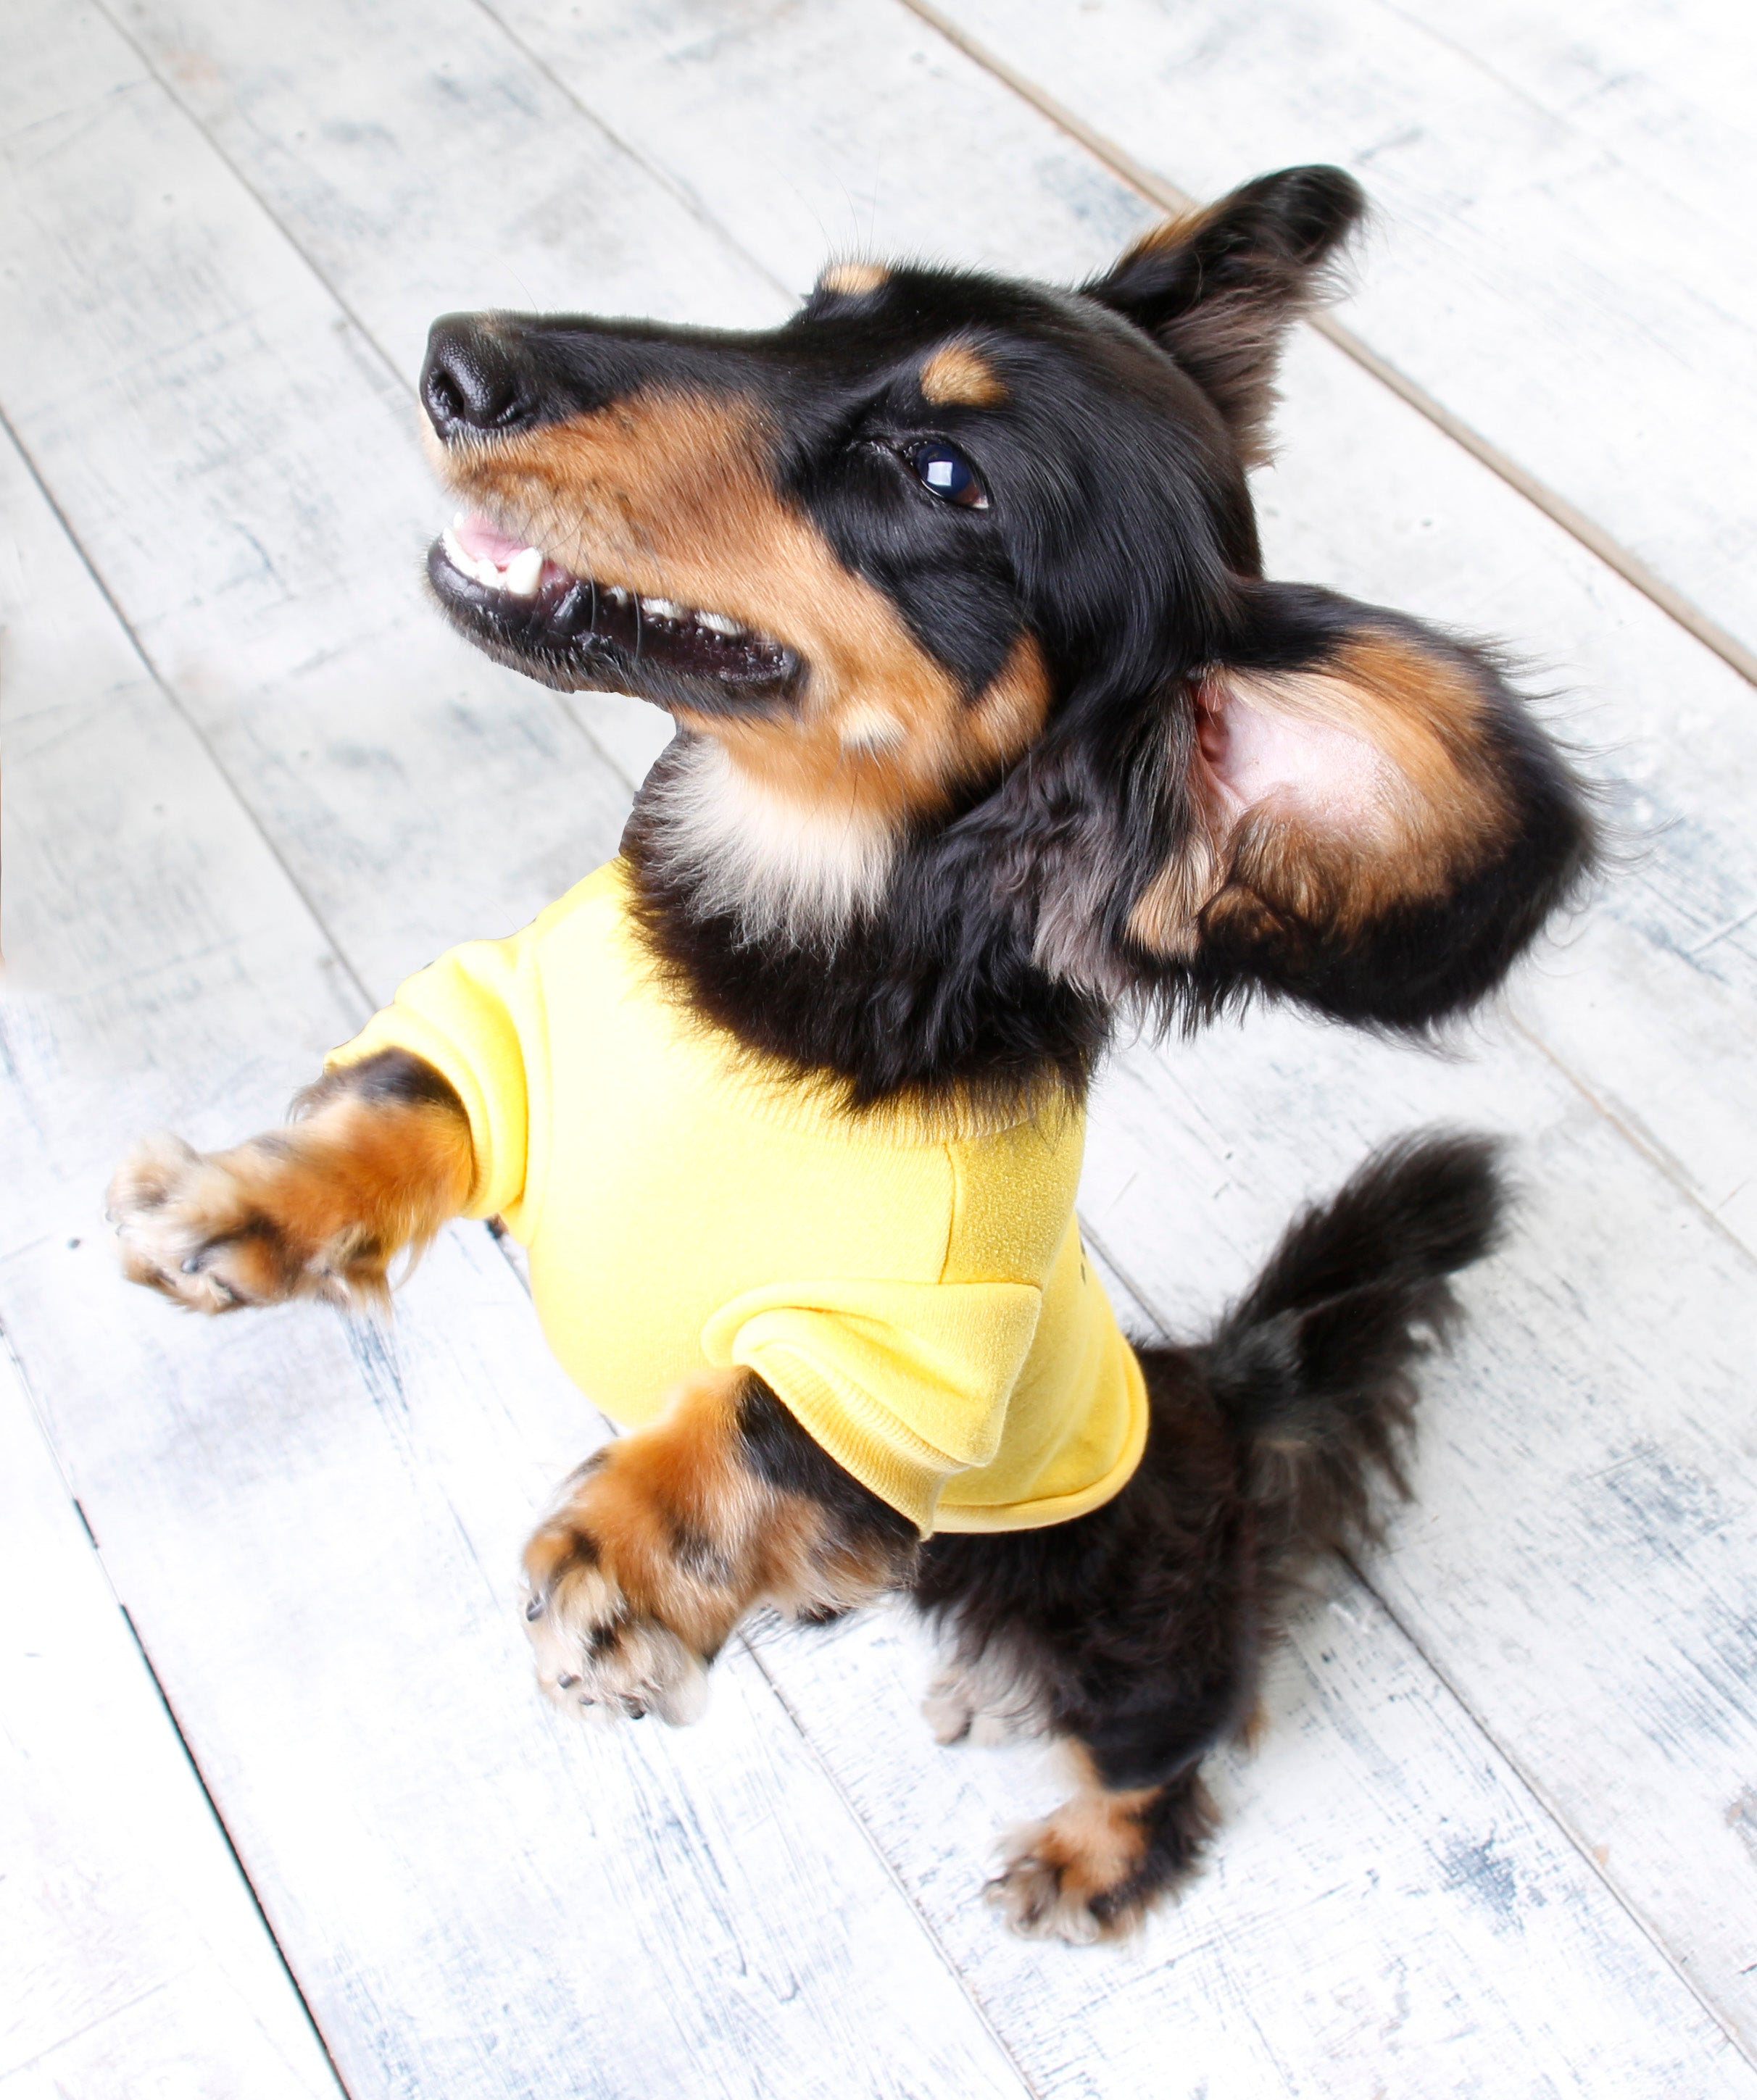 Image of: Photoshoot Sausage Dog Jumpers Dachshunds Clothing Dachshund Jumpers Sausage Dog Central Dachshund Products Wiener Dog World Sausage Dog Jumpers Clothes For Miniature Dachshunds Wiener